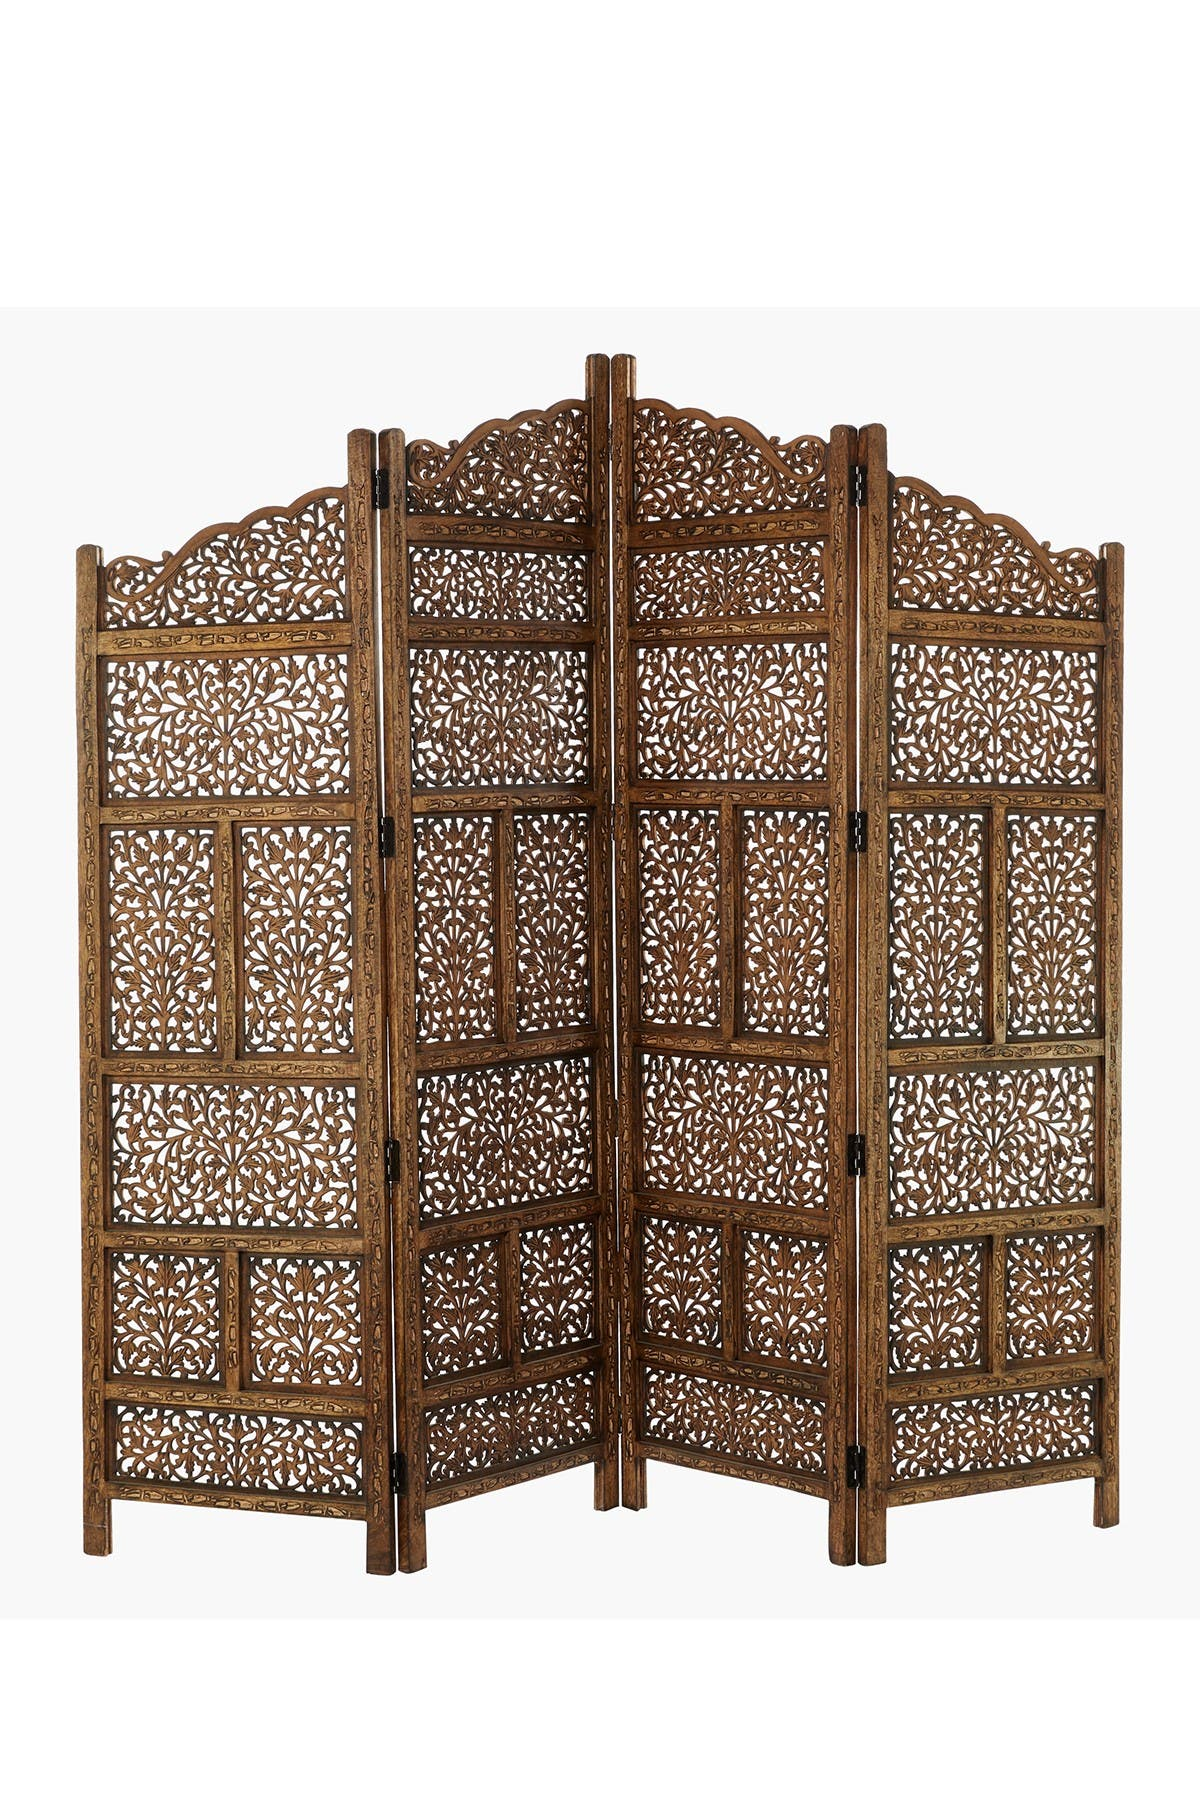 Image of Willow Row Large 4-Panel Brown Wood Screen Decorative Room Divider